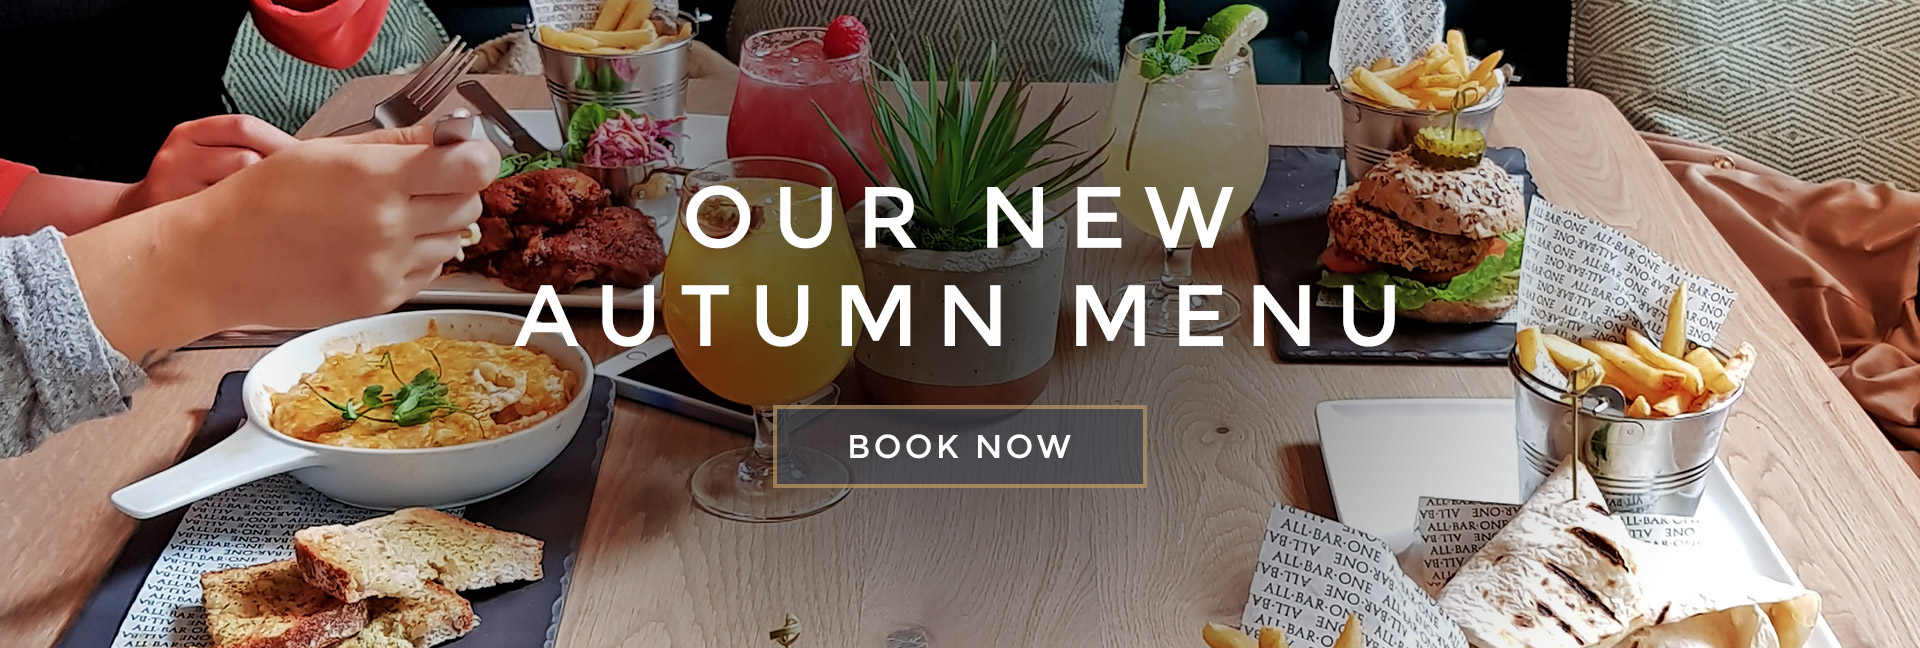 Our new Autumn menu at All Bar One Windsor - Book now